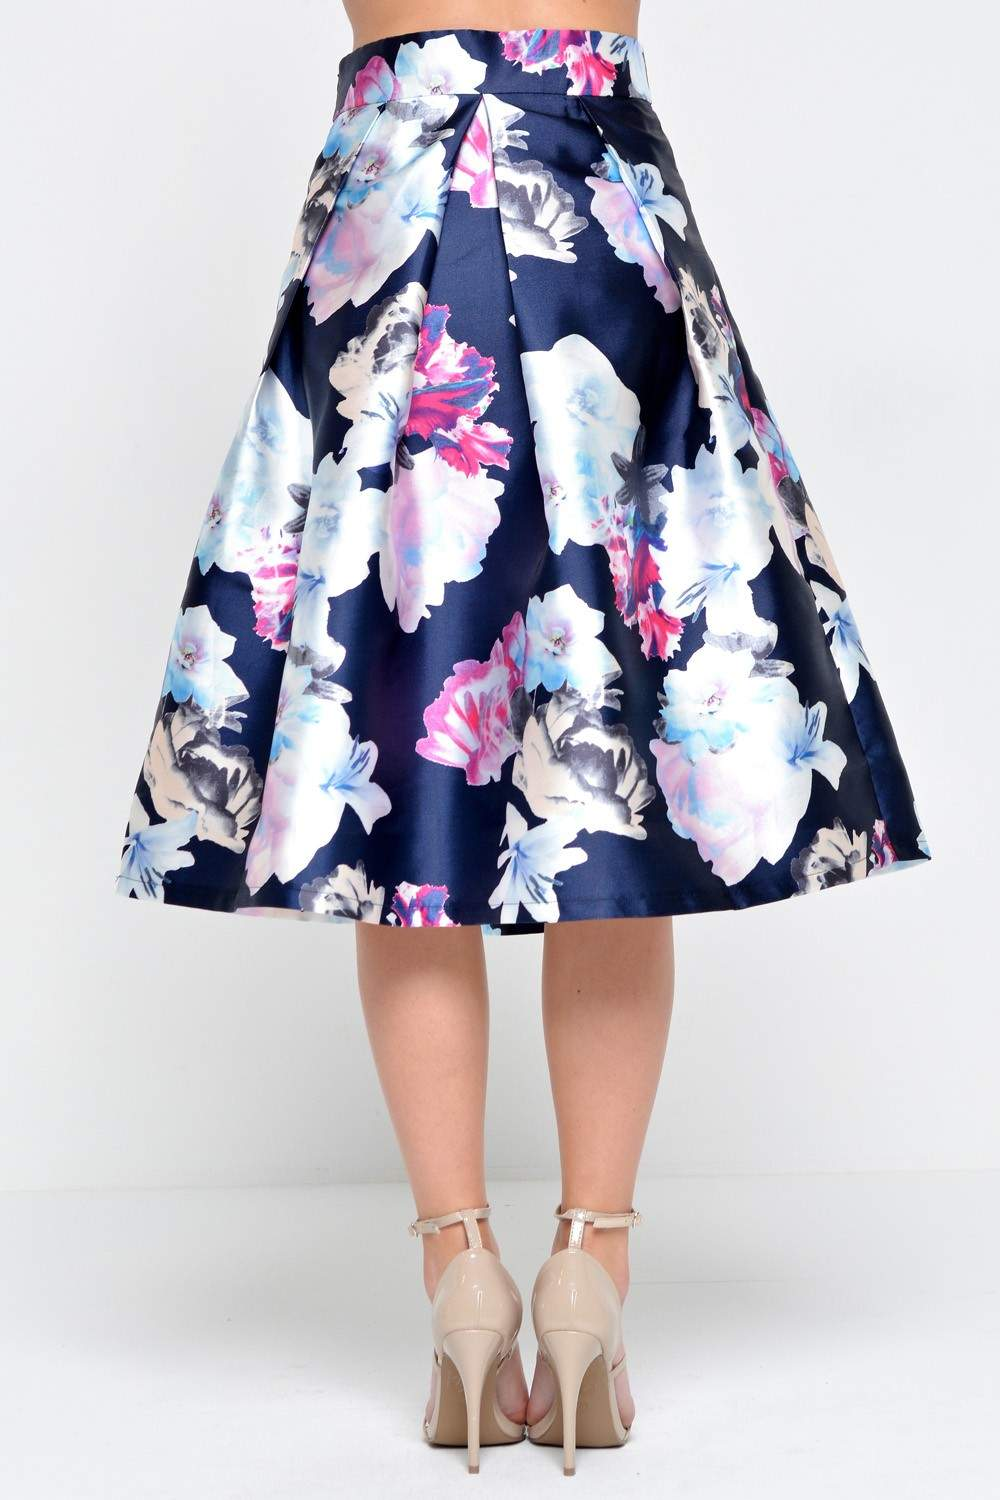 Jordan Floral Pleat Midi Skirt in Navy